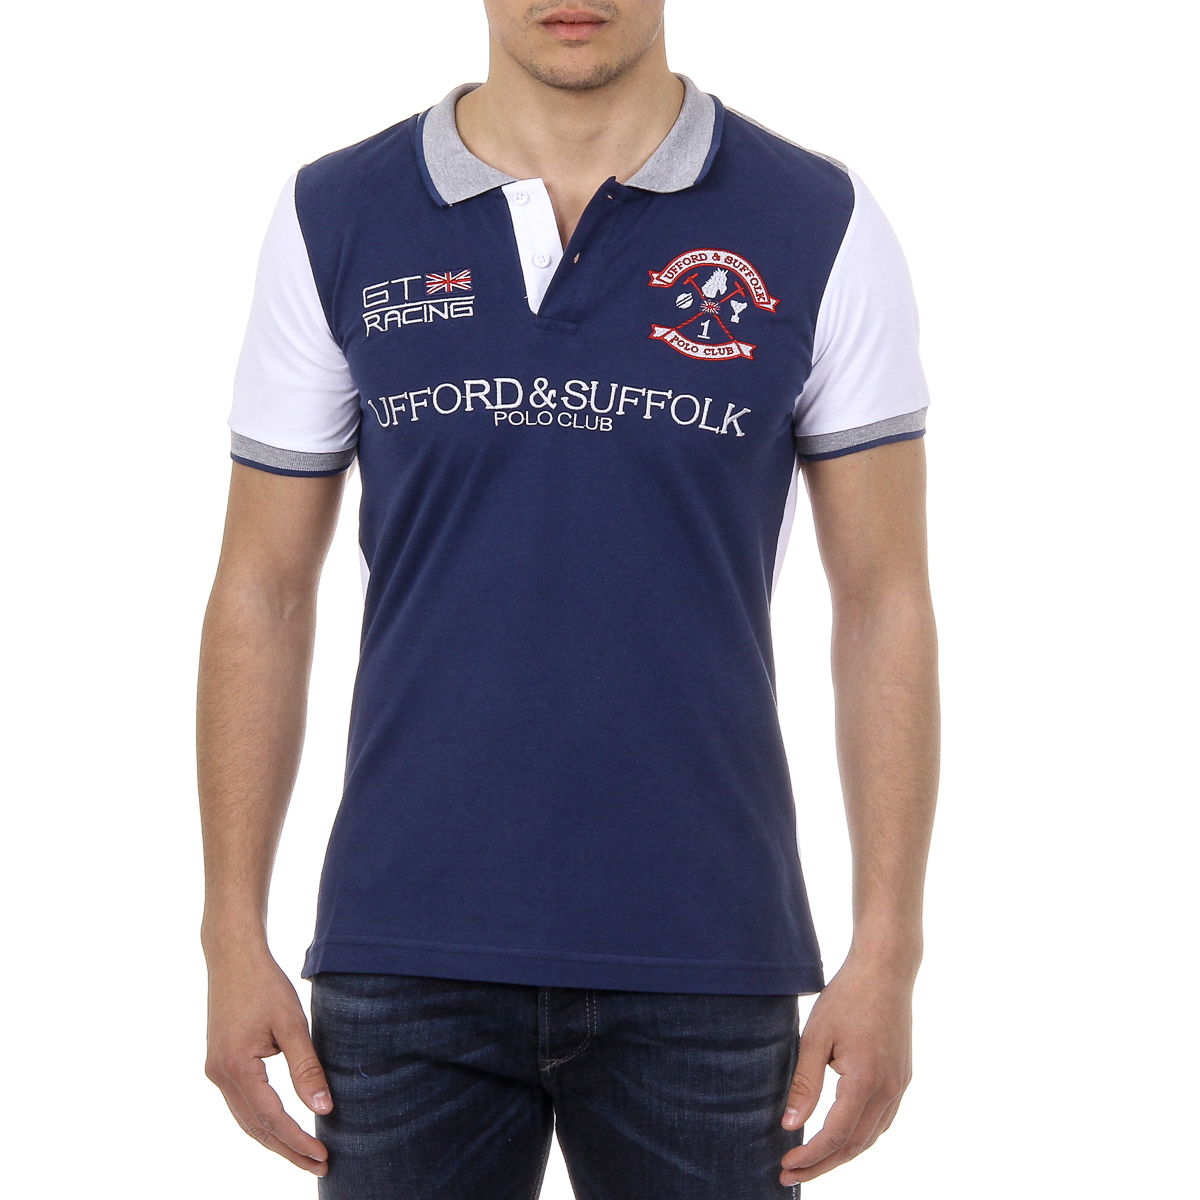 Primary image for Ufford & Suffolk Polo Club Mens Polo Short Sleeves US001 INDIGO